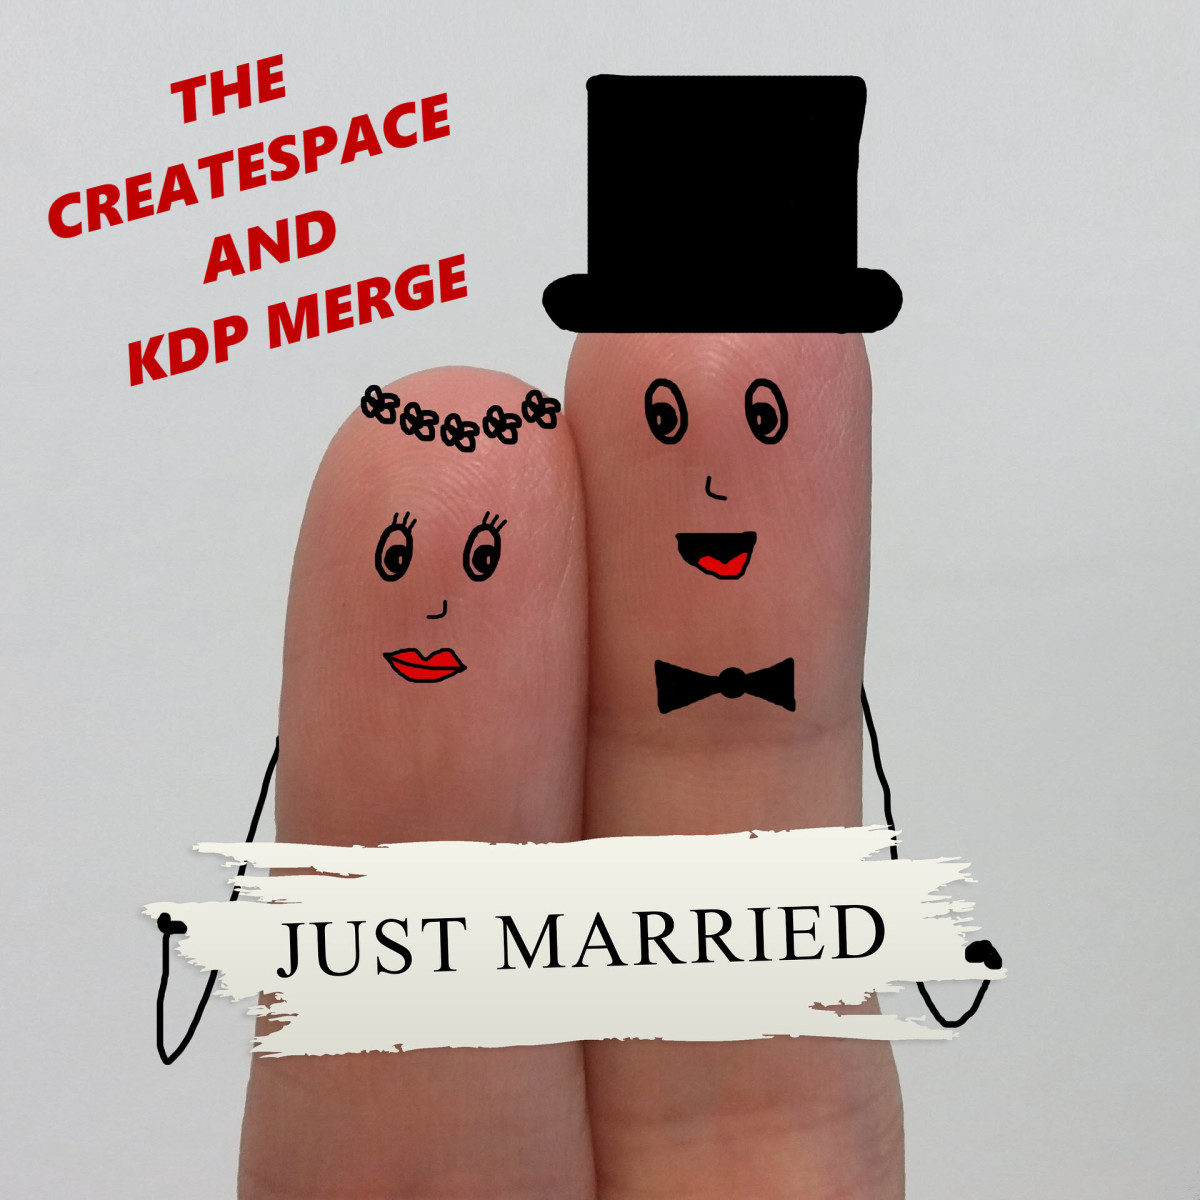 The CreateSpace and KDP Merge